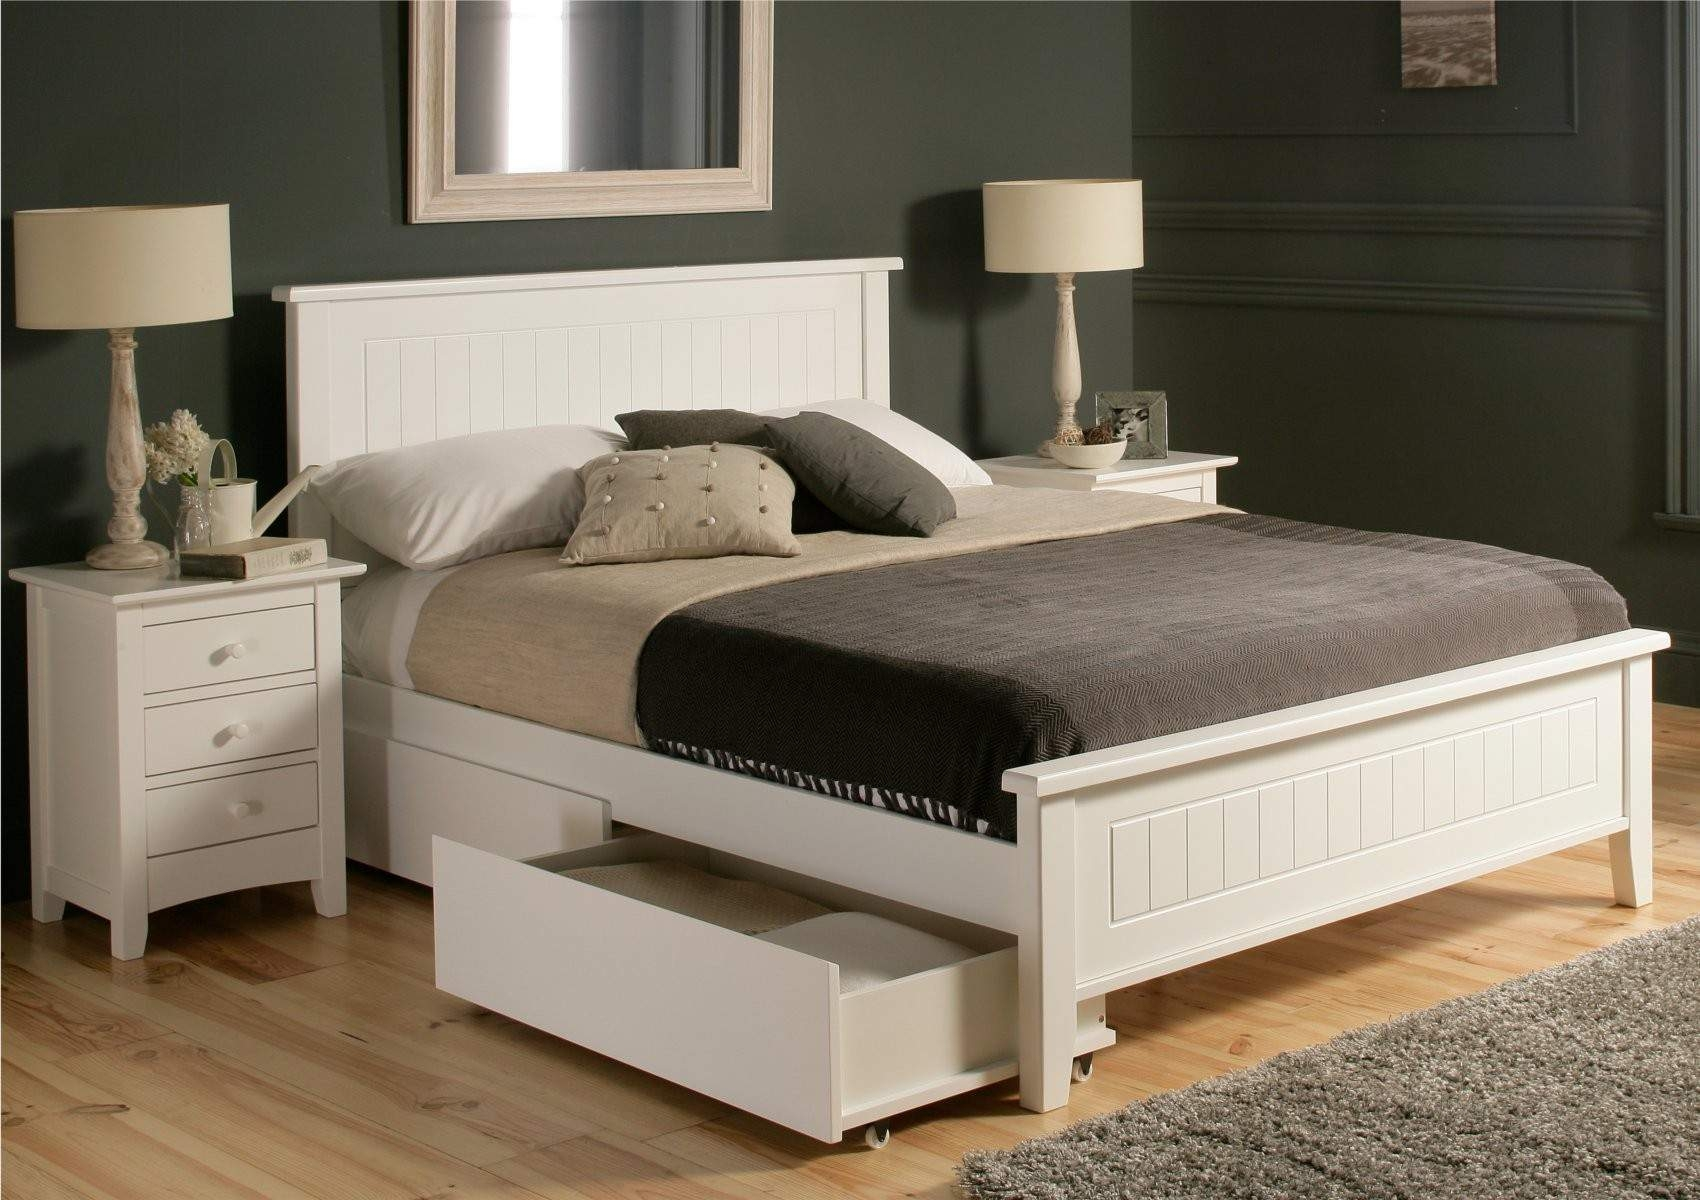 High Rise Full Size Bed Framebed frame high queen bed frame queen high bed frame high rise